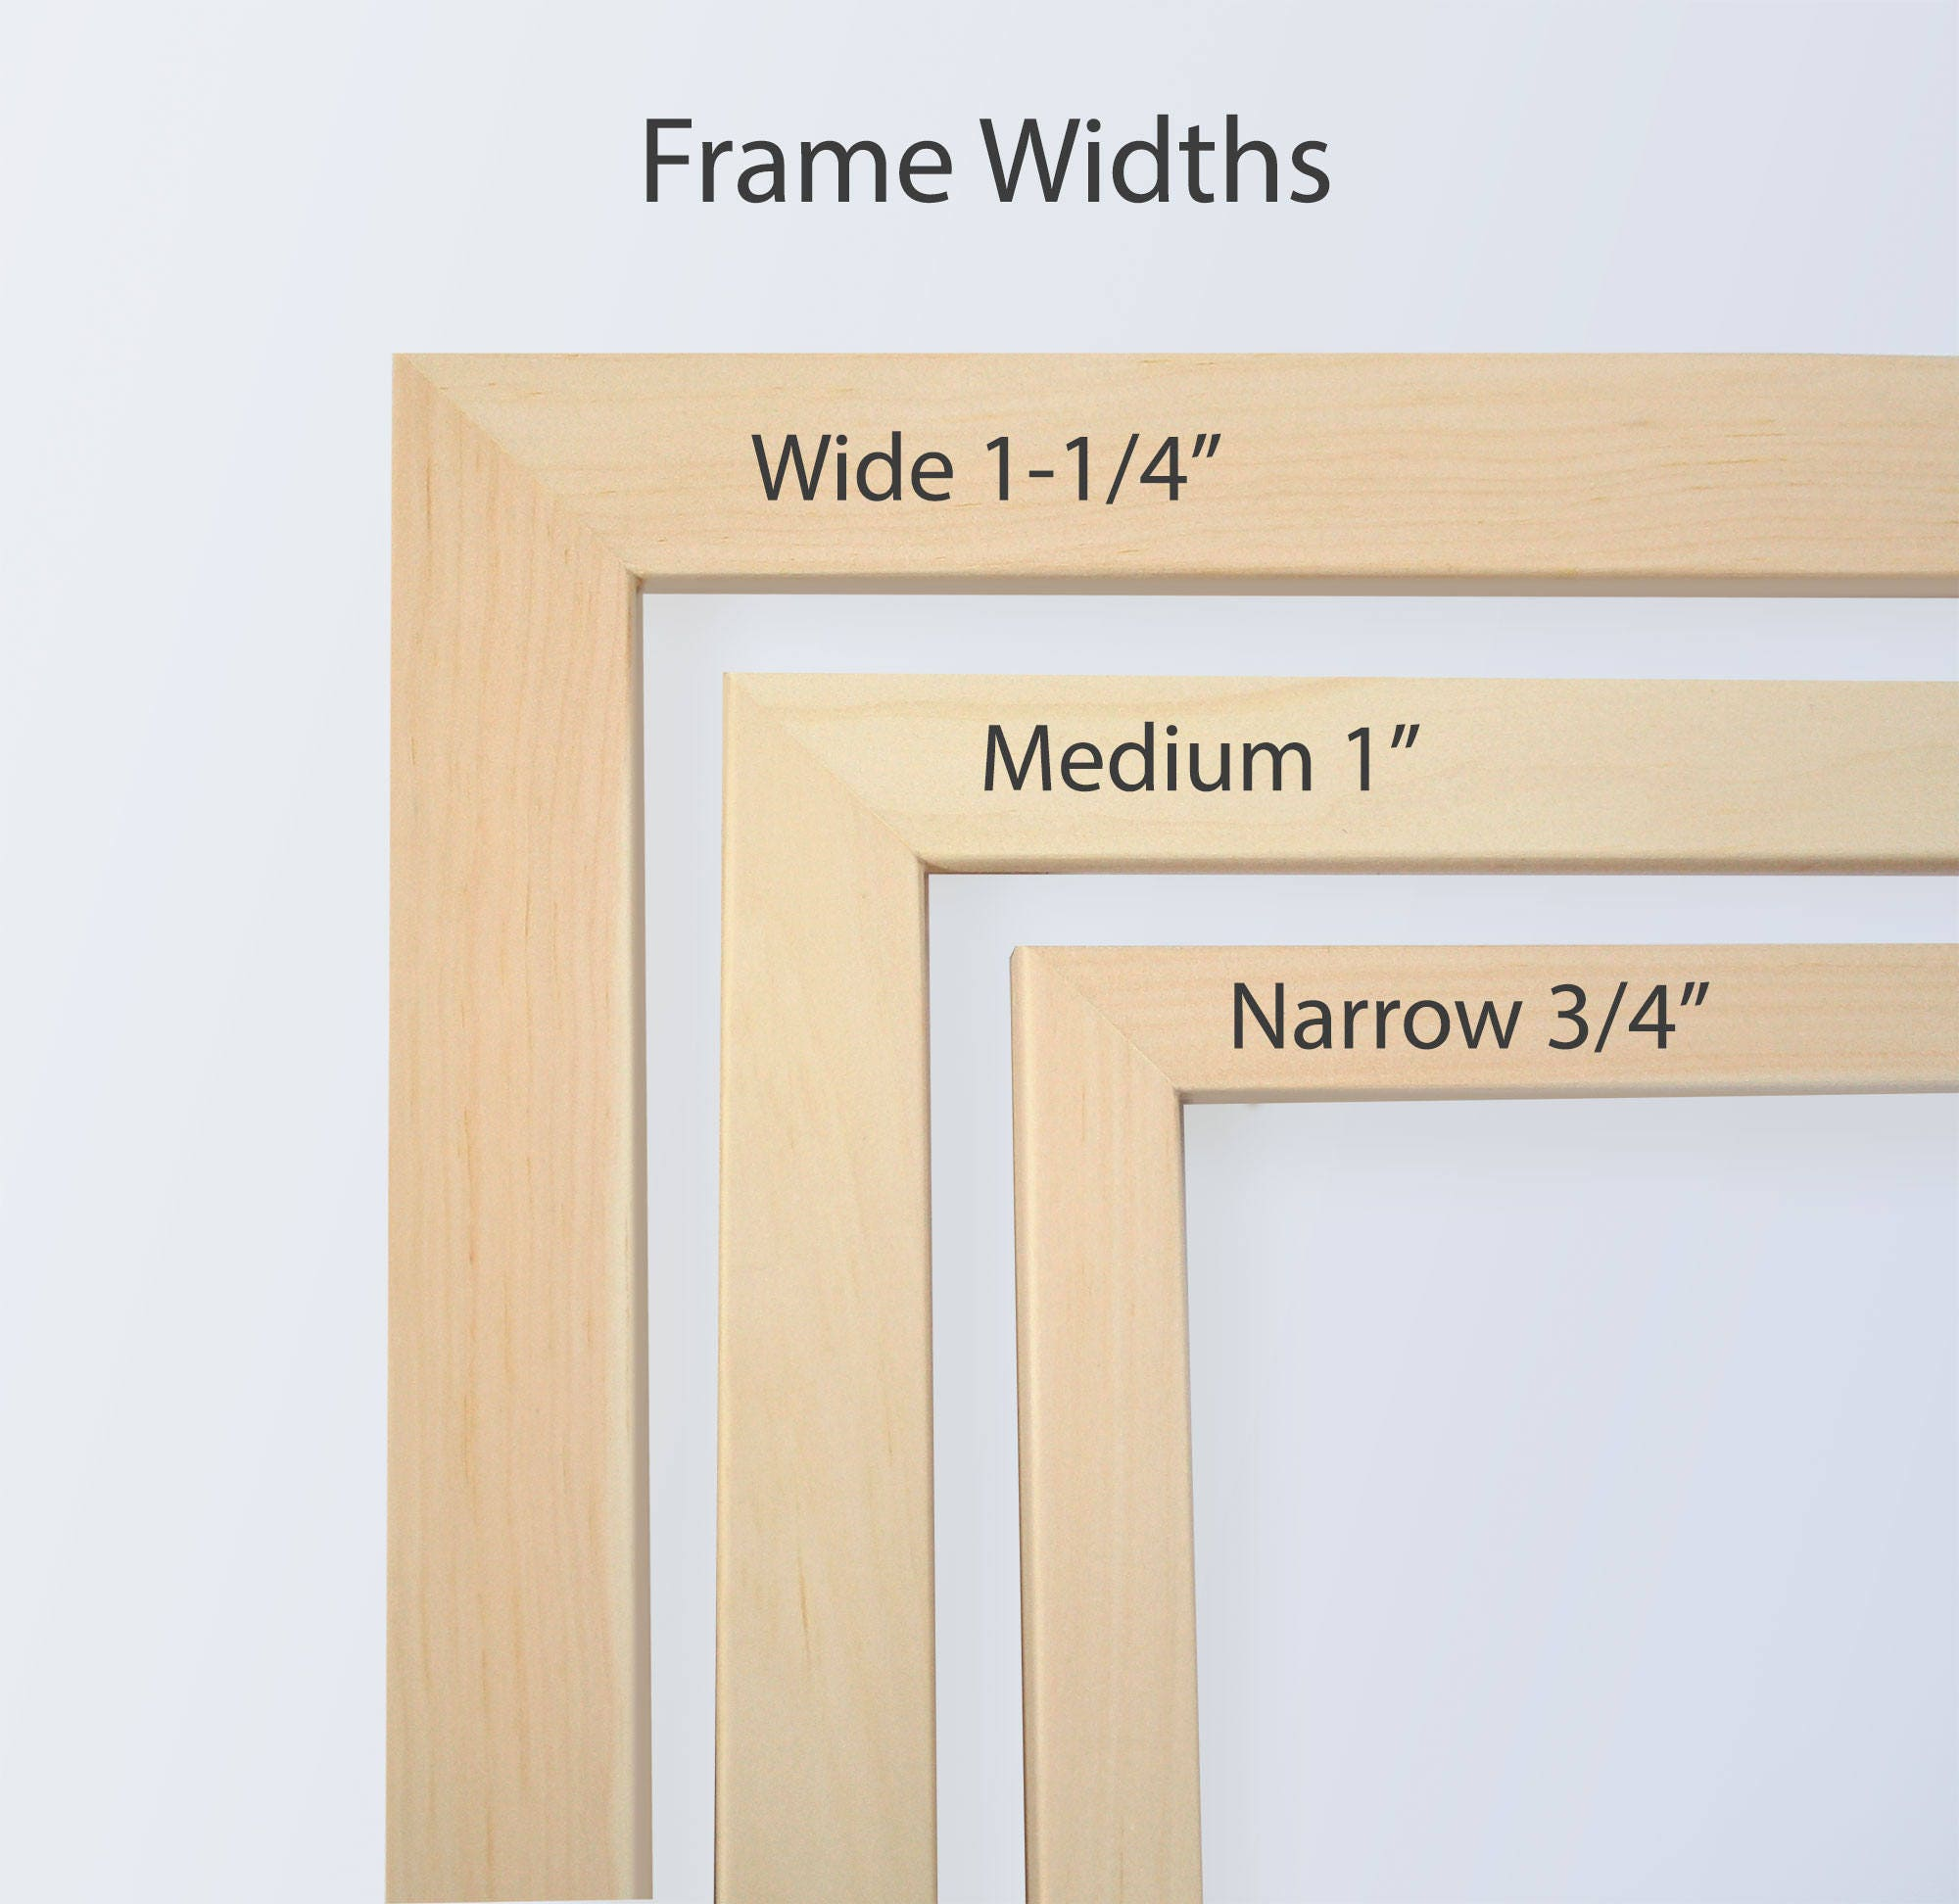 5x5 Picture Frame, Cross Stitch, Natural Wood Frames, Needlepoint ...